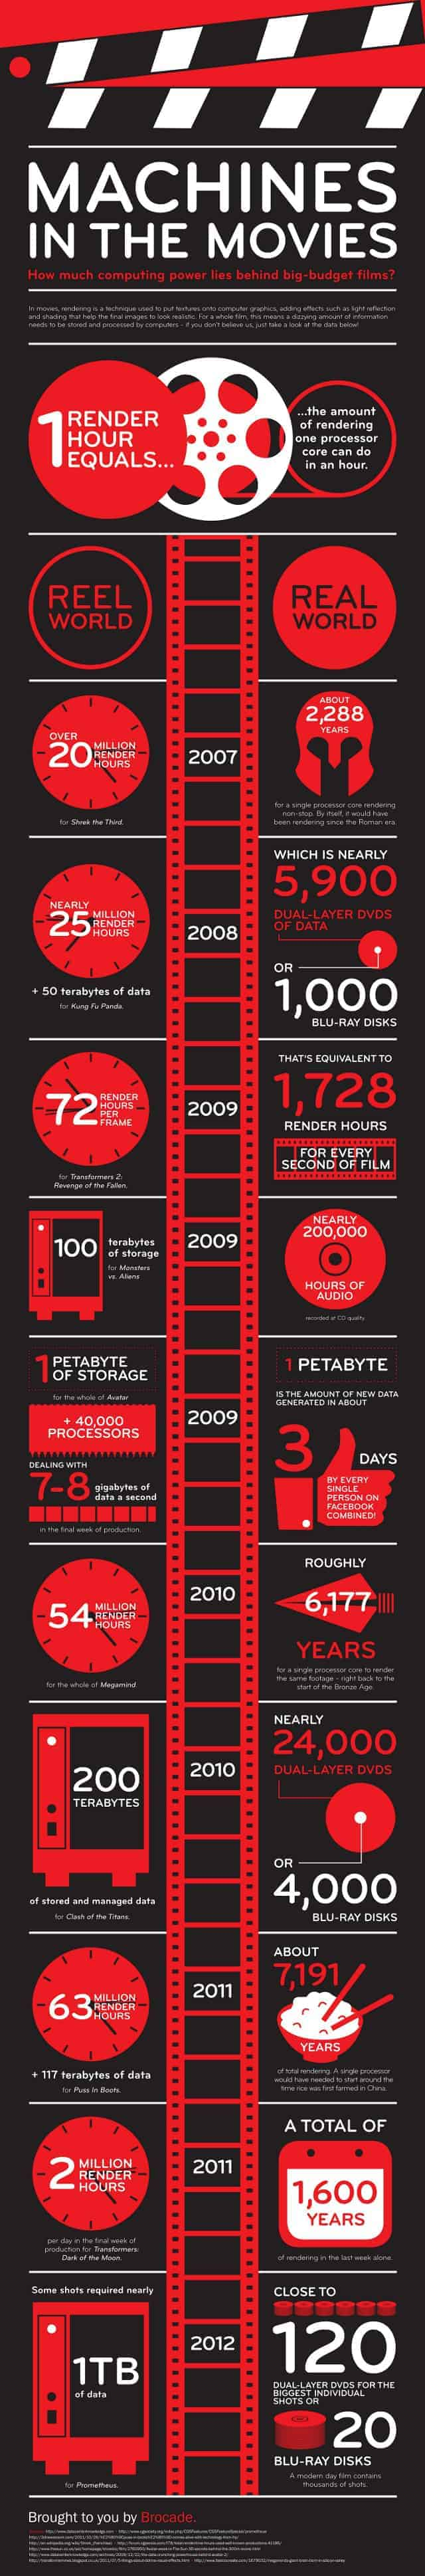 machine in movie infographic